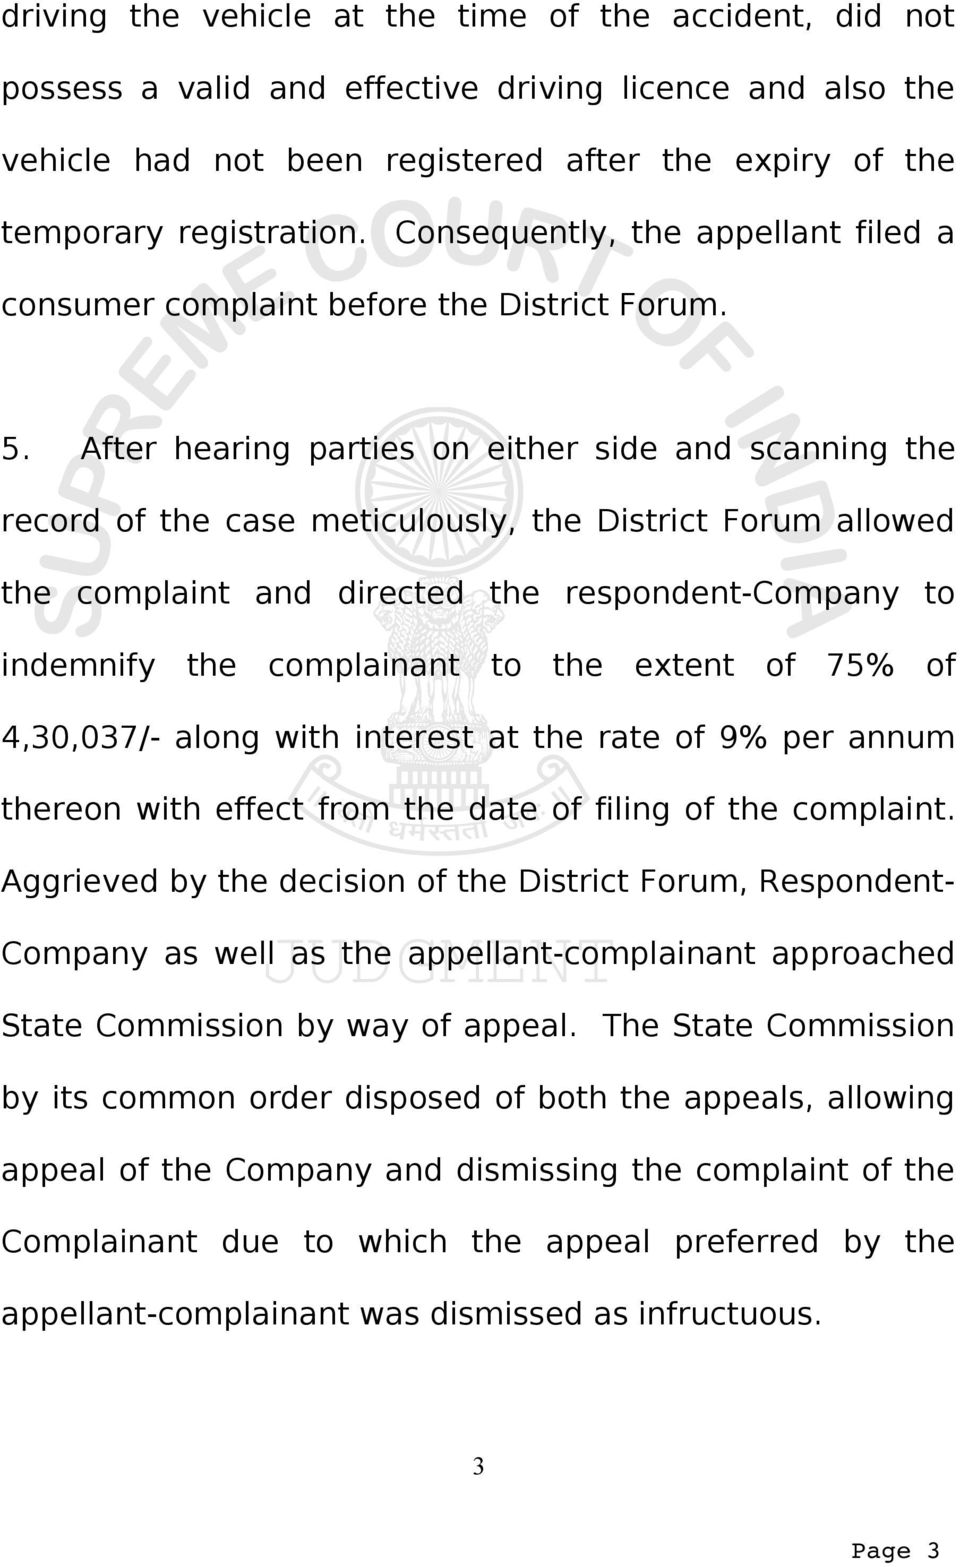 After hearing parties on either side and scanning the record of the case meticulously, the District Forum allowed the complaint and directed the respondent-company to indemnify the complainant to the